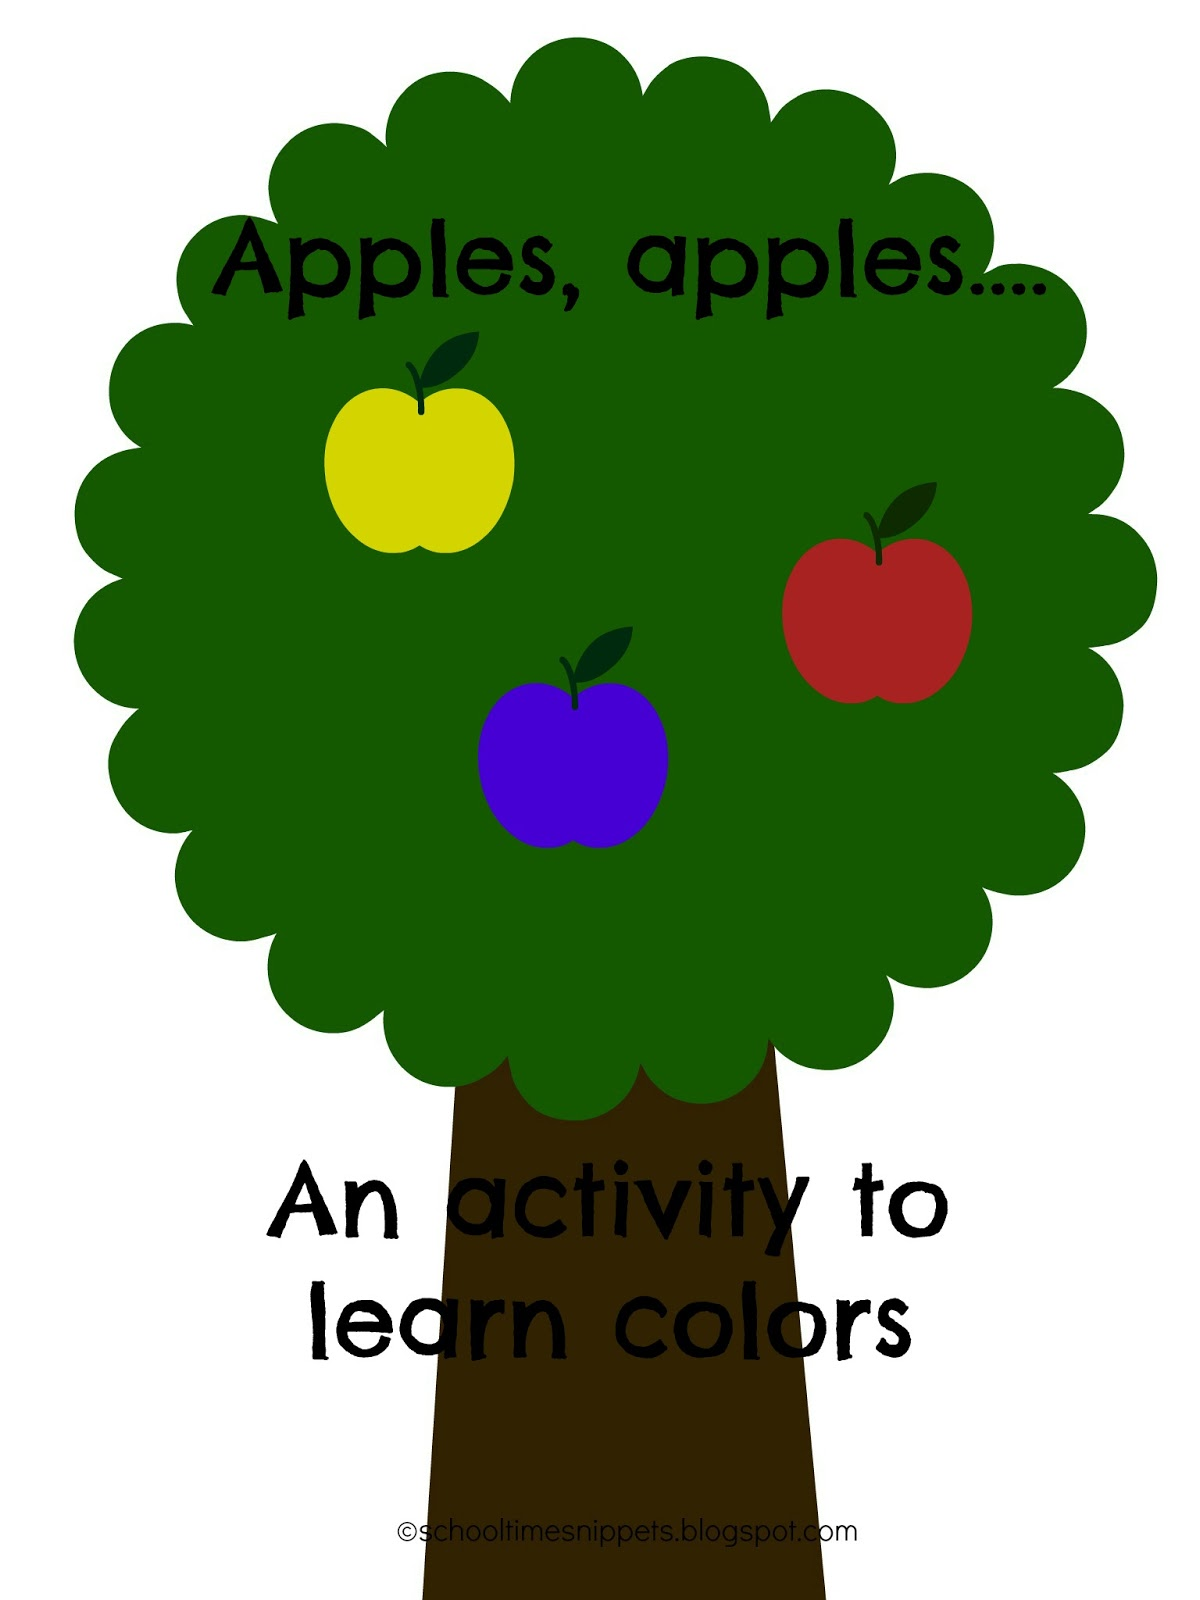 Apple Color Song for Preschoolers | School Time Snippets